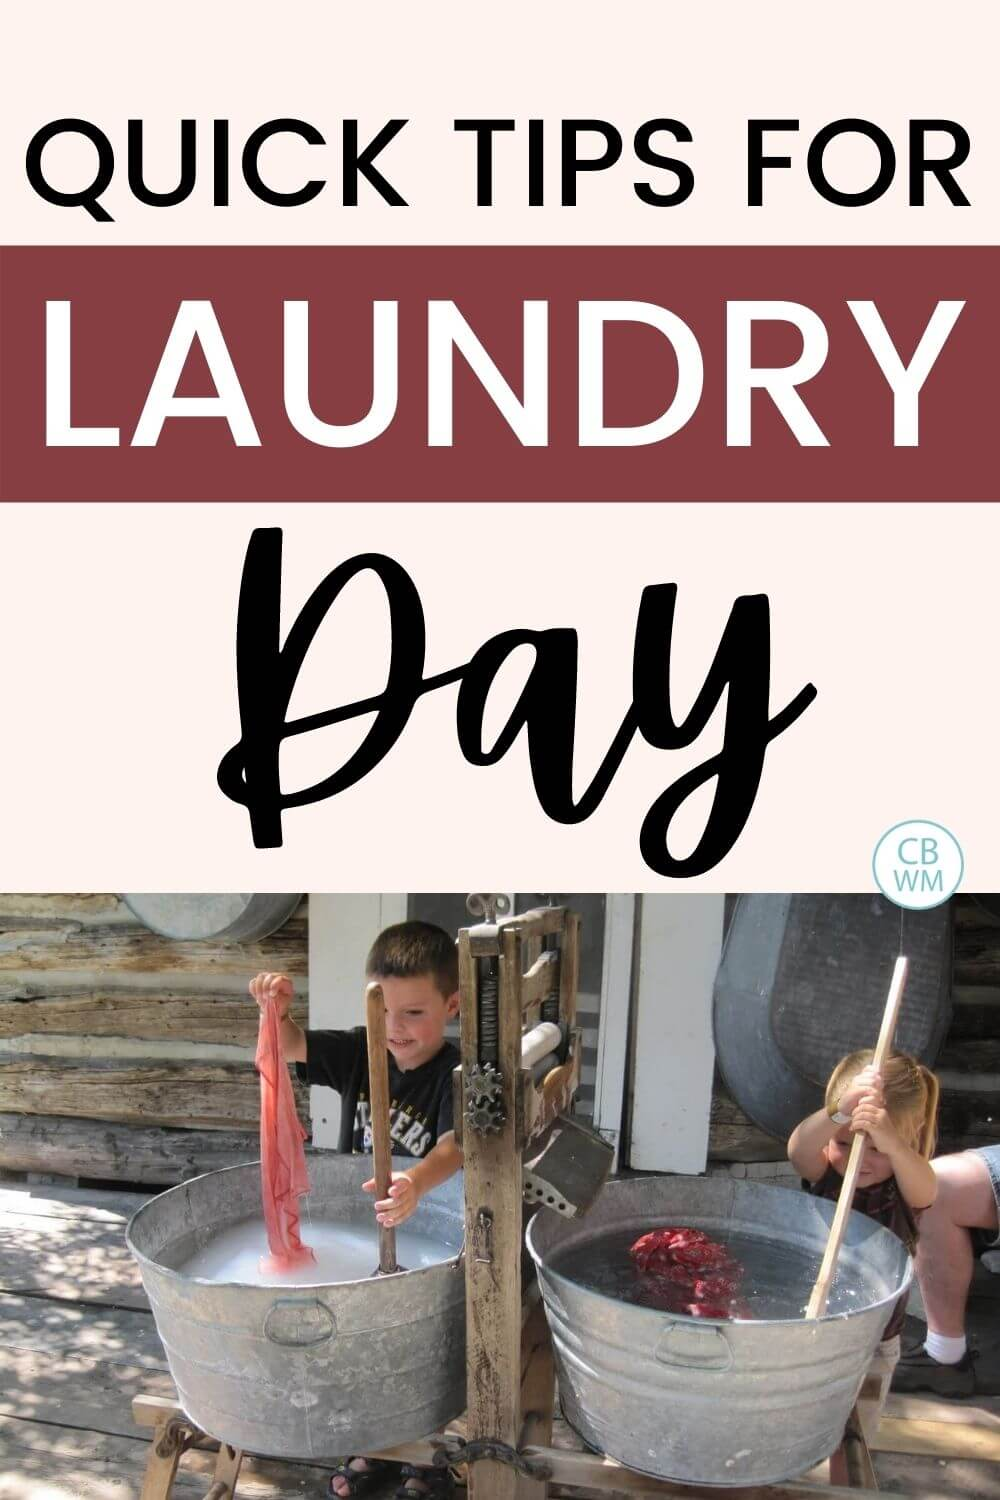 Quick tips for laundry day